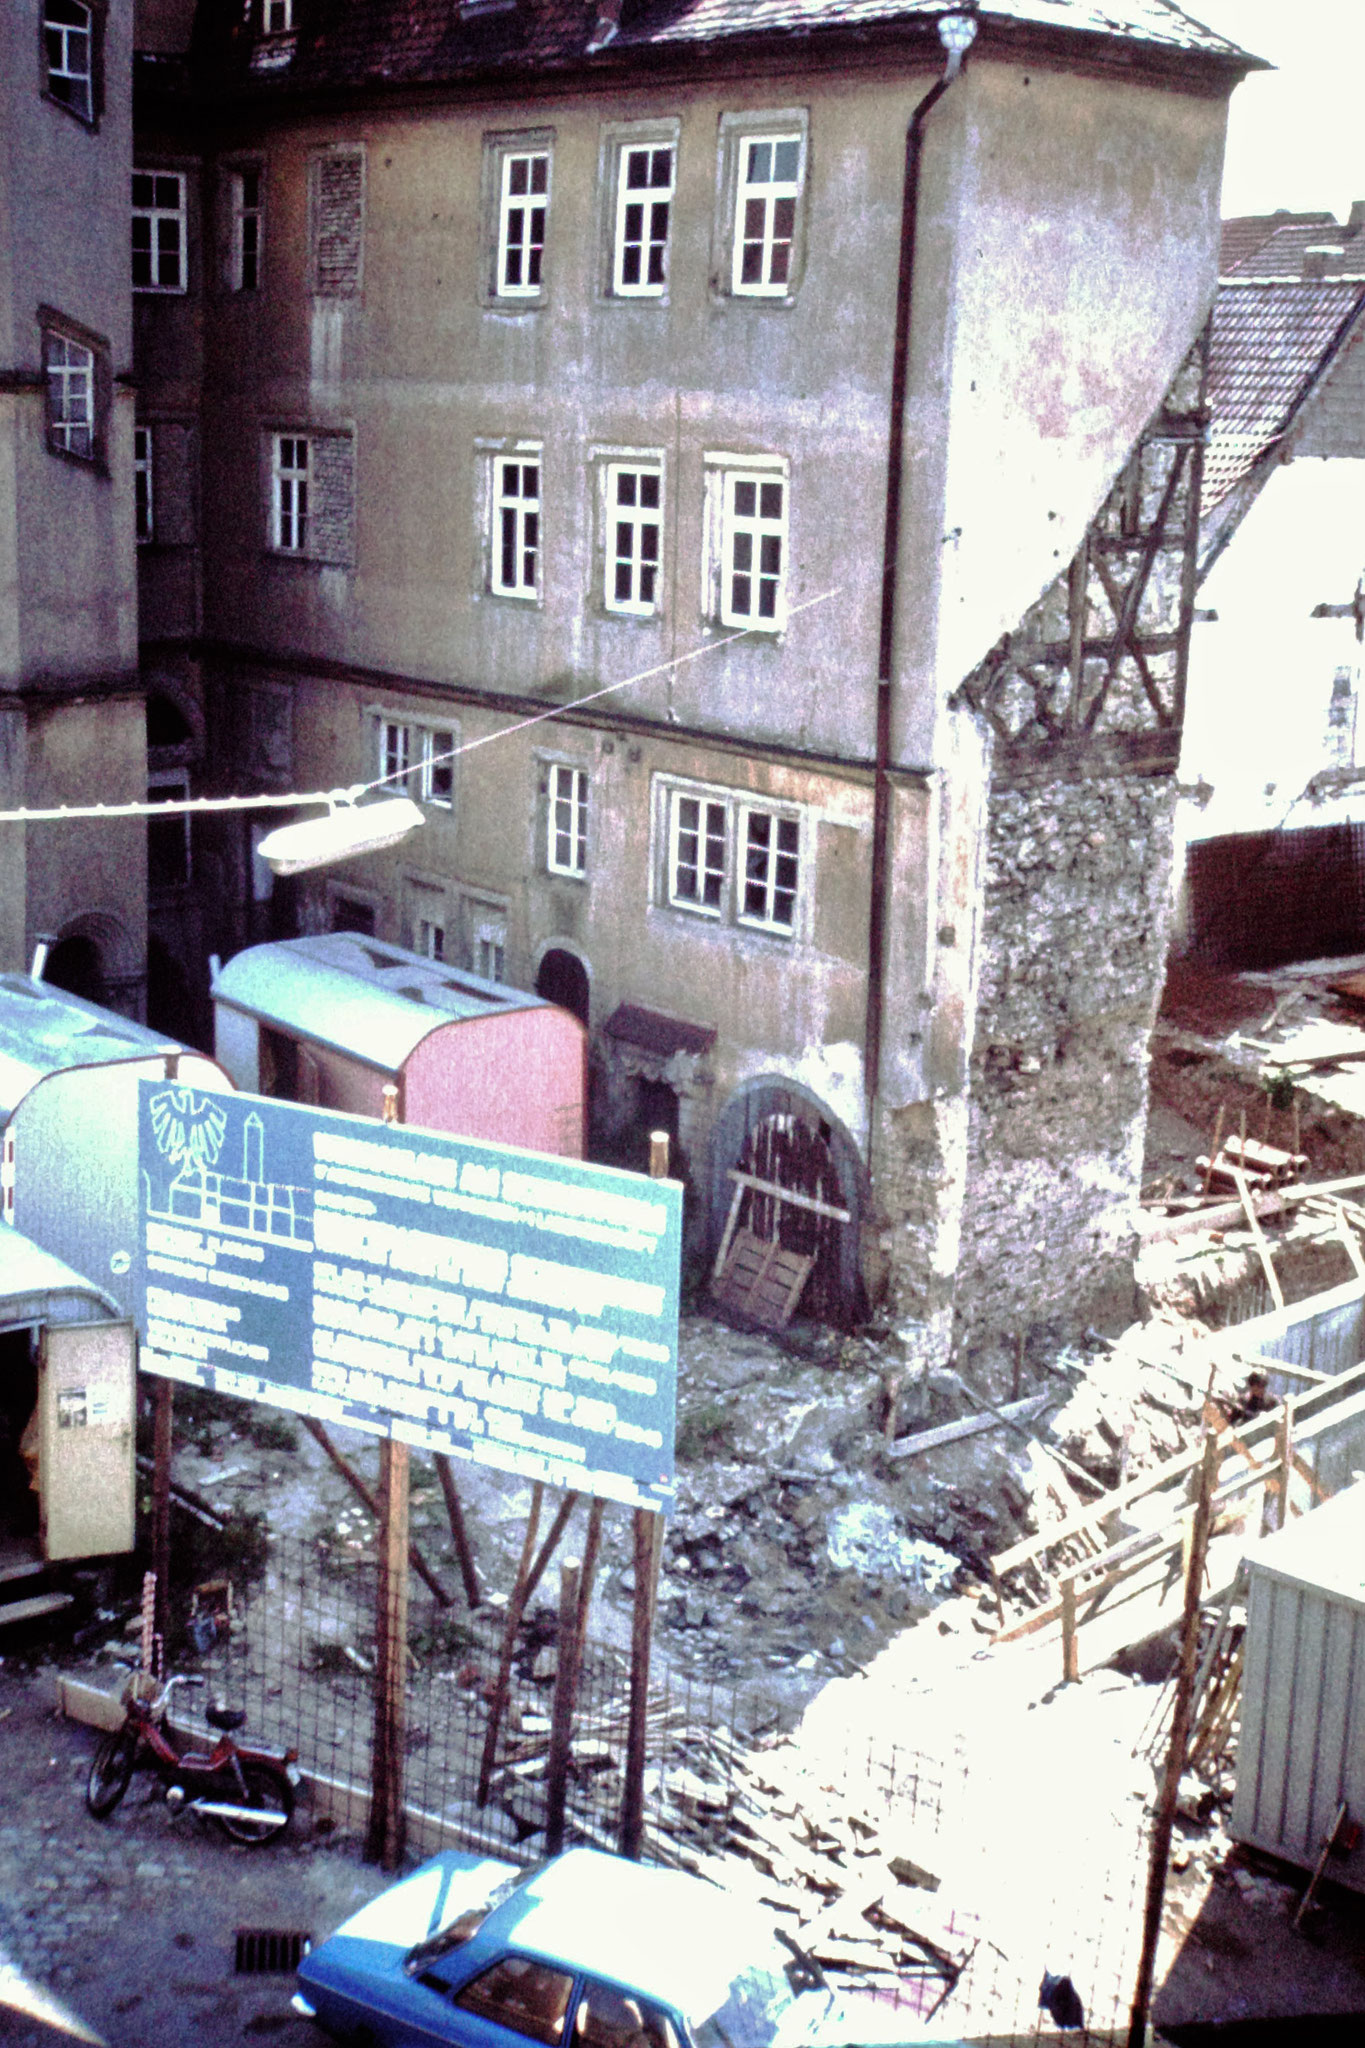 20.6.1981 Abriss Petersgasse